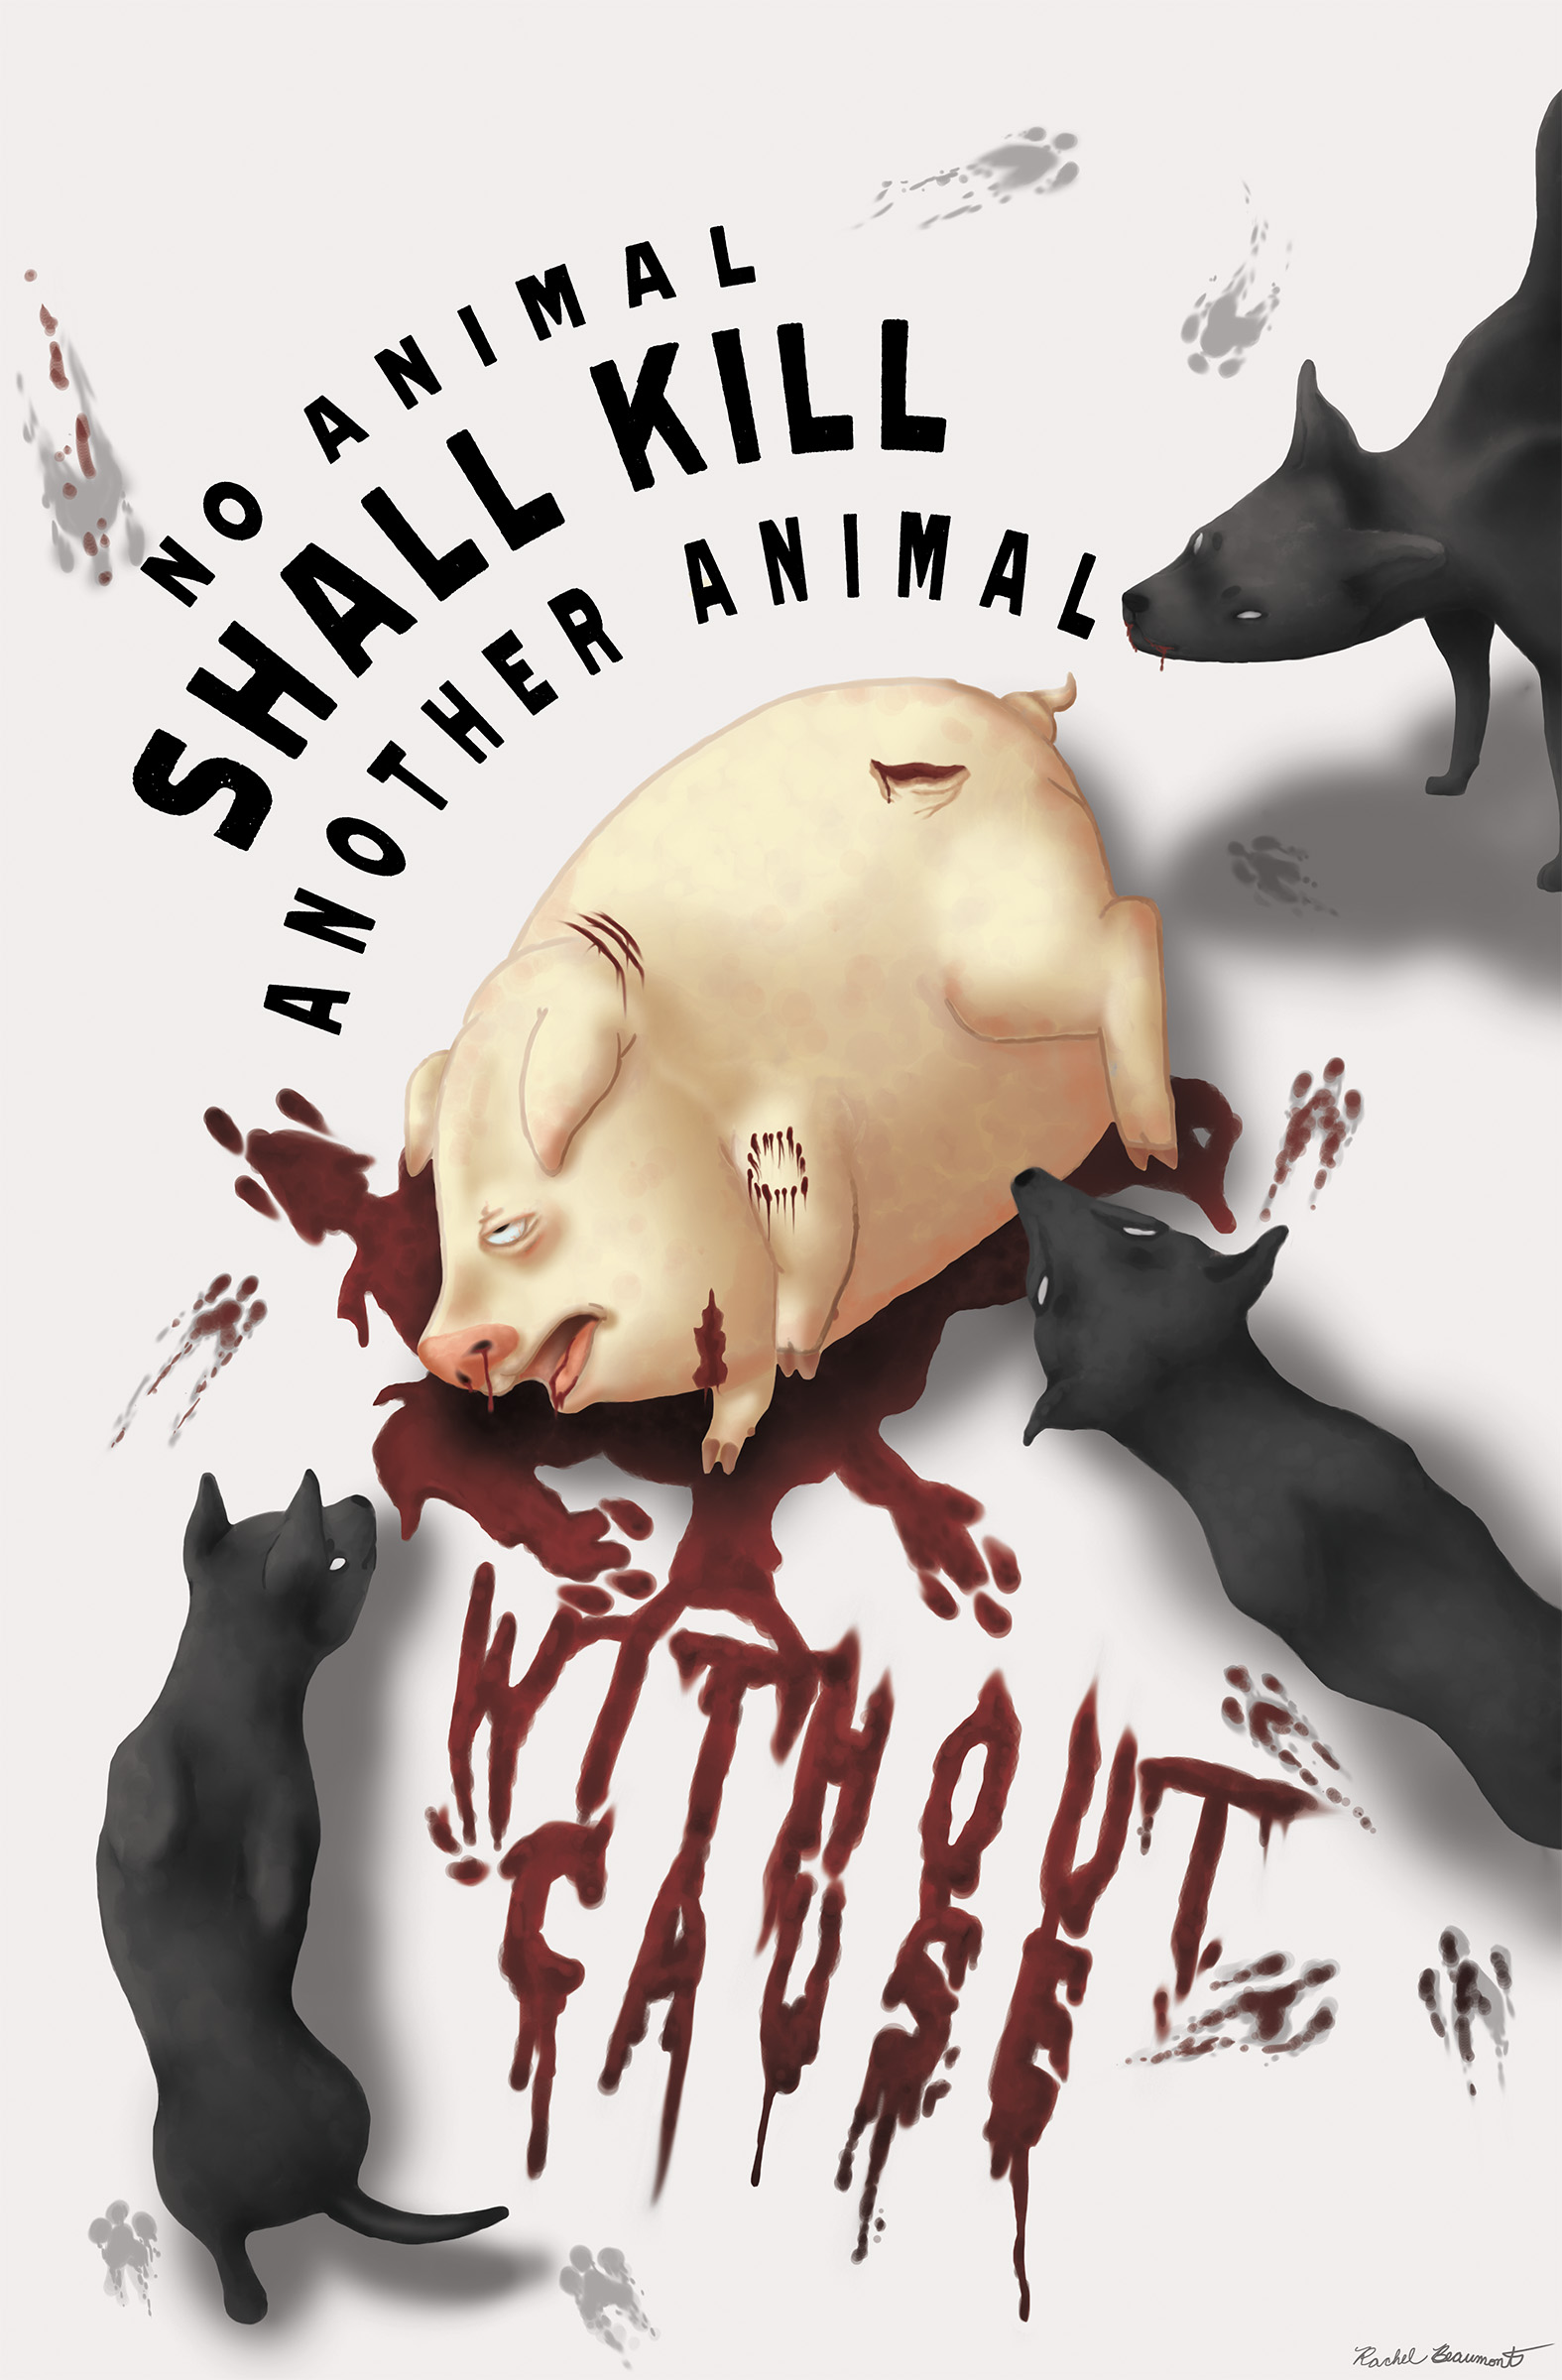 Animal Farm: Without Cause